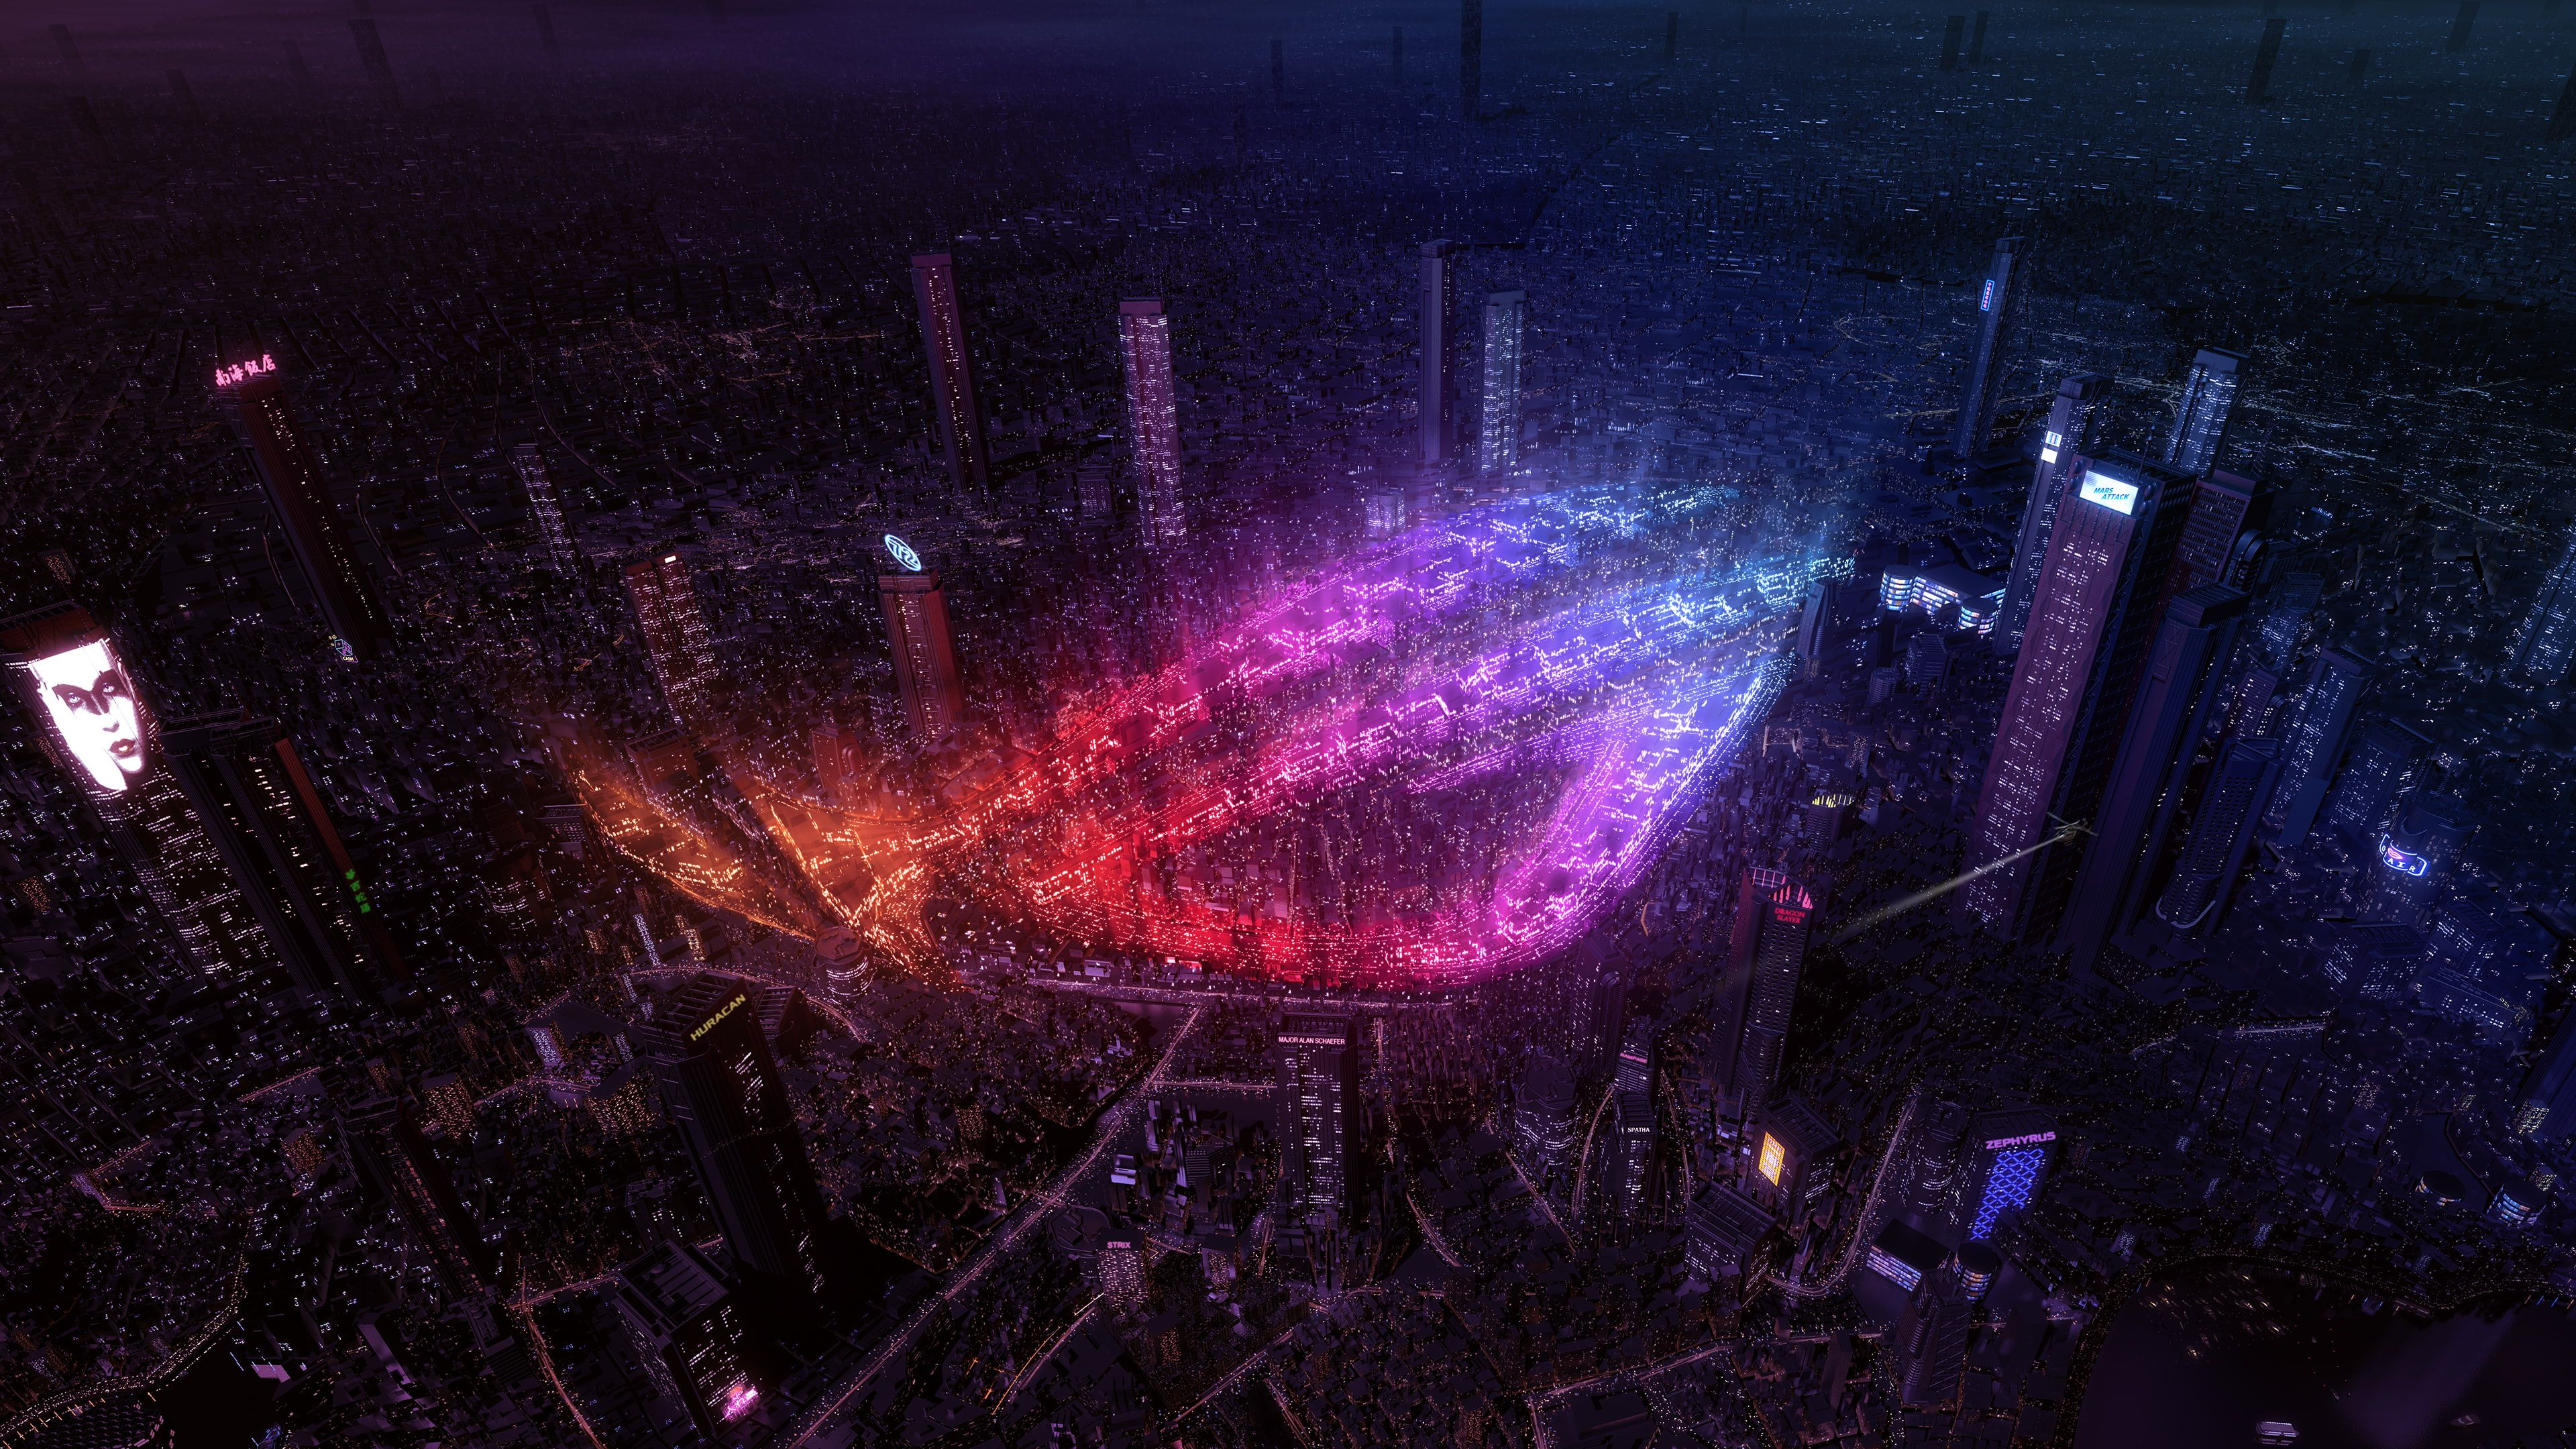 Asus Rog City Neon Lights City Lights Asus Neon Rog 4k Wallpaper Hdwallpaper Desktop 4k Wallpapers For Pc Neon Light Wallpaper Neon Wallpaper